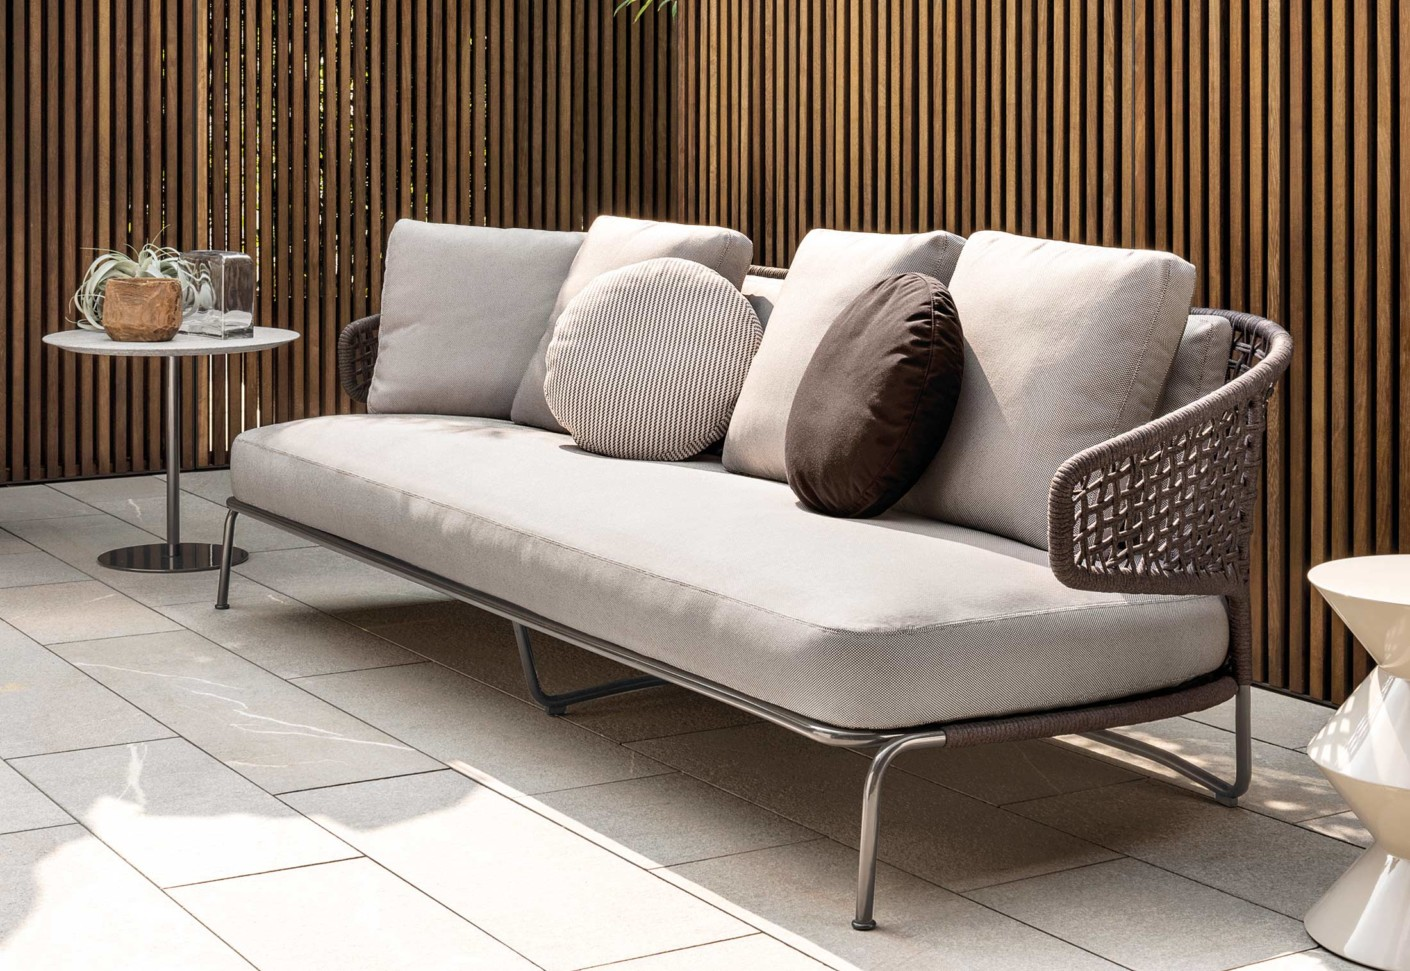 aston cord outdoor sofa von minotti stylepark. Black Bedroom Furniture Sets. Home Design Ideas